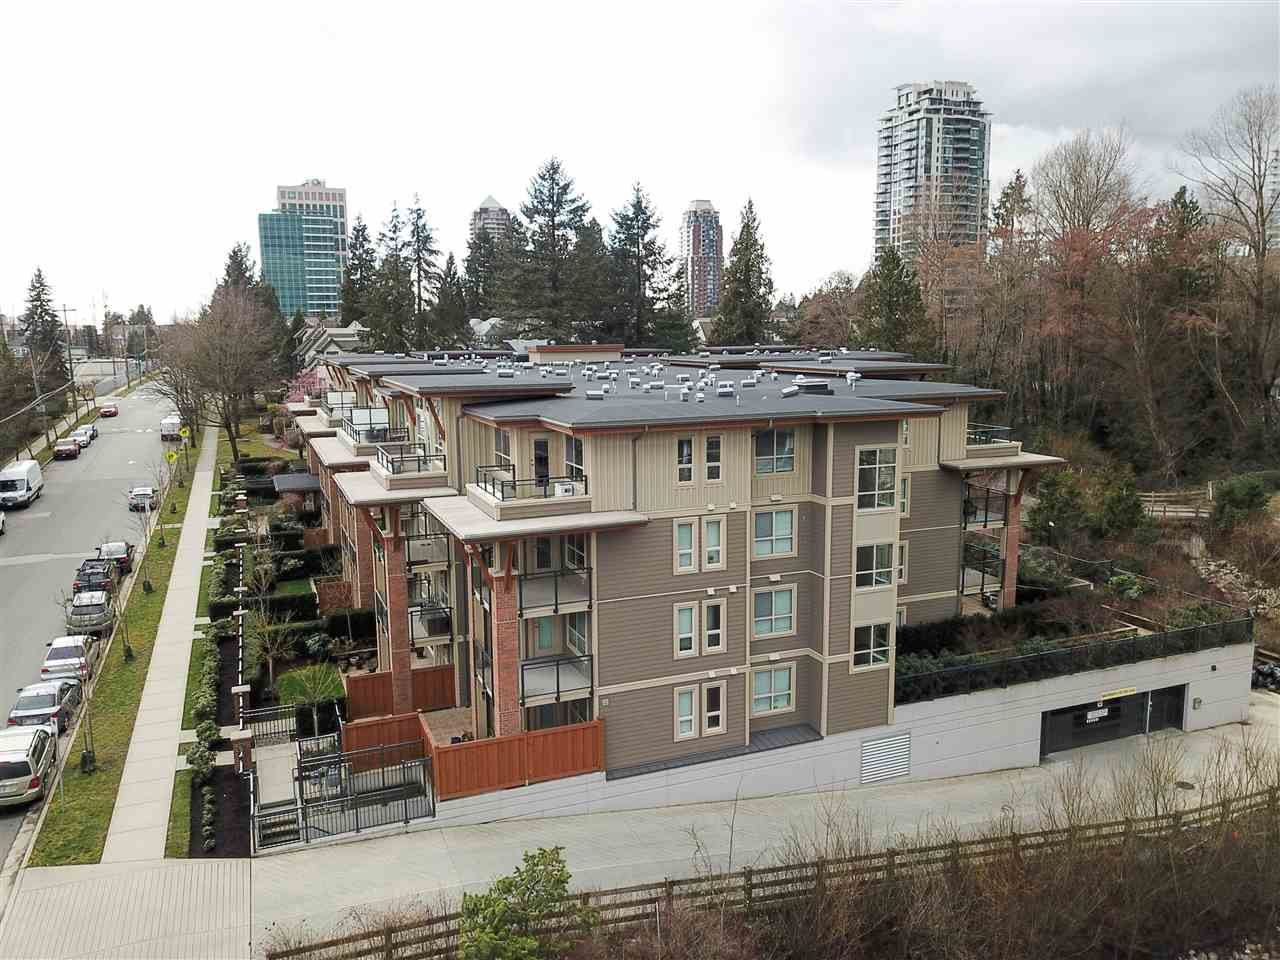 """Main Photo: 111 7131 STRIDE Avenue in Burnaby: Edmonds BE Condo for sale in """"Storybrook"""" (Burnaby East)  : MLS®# R2269375"""